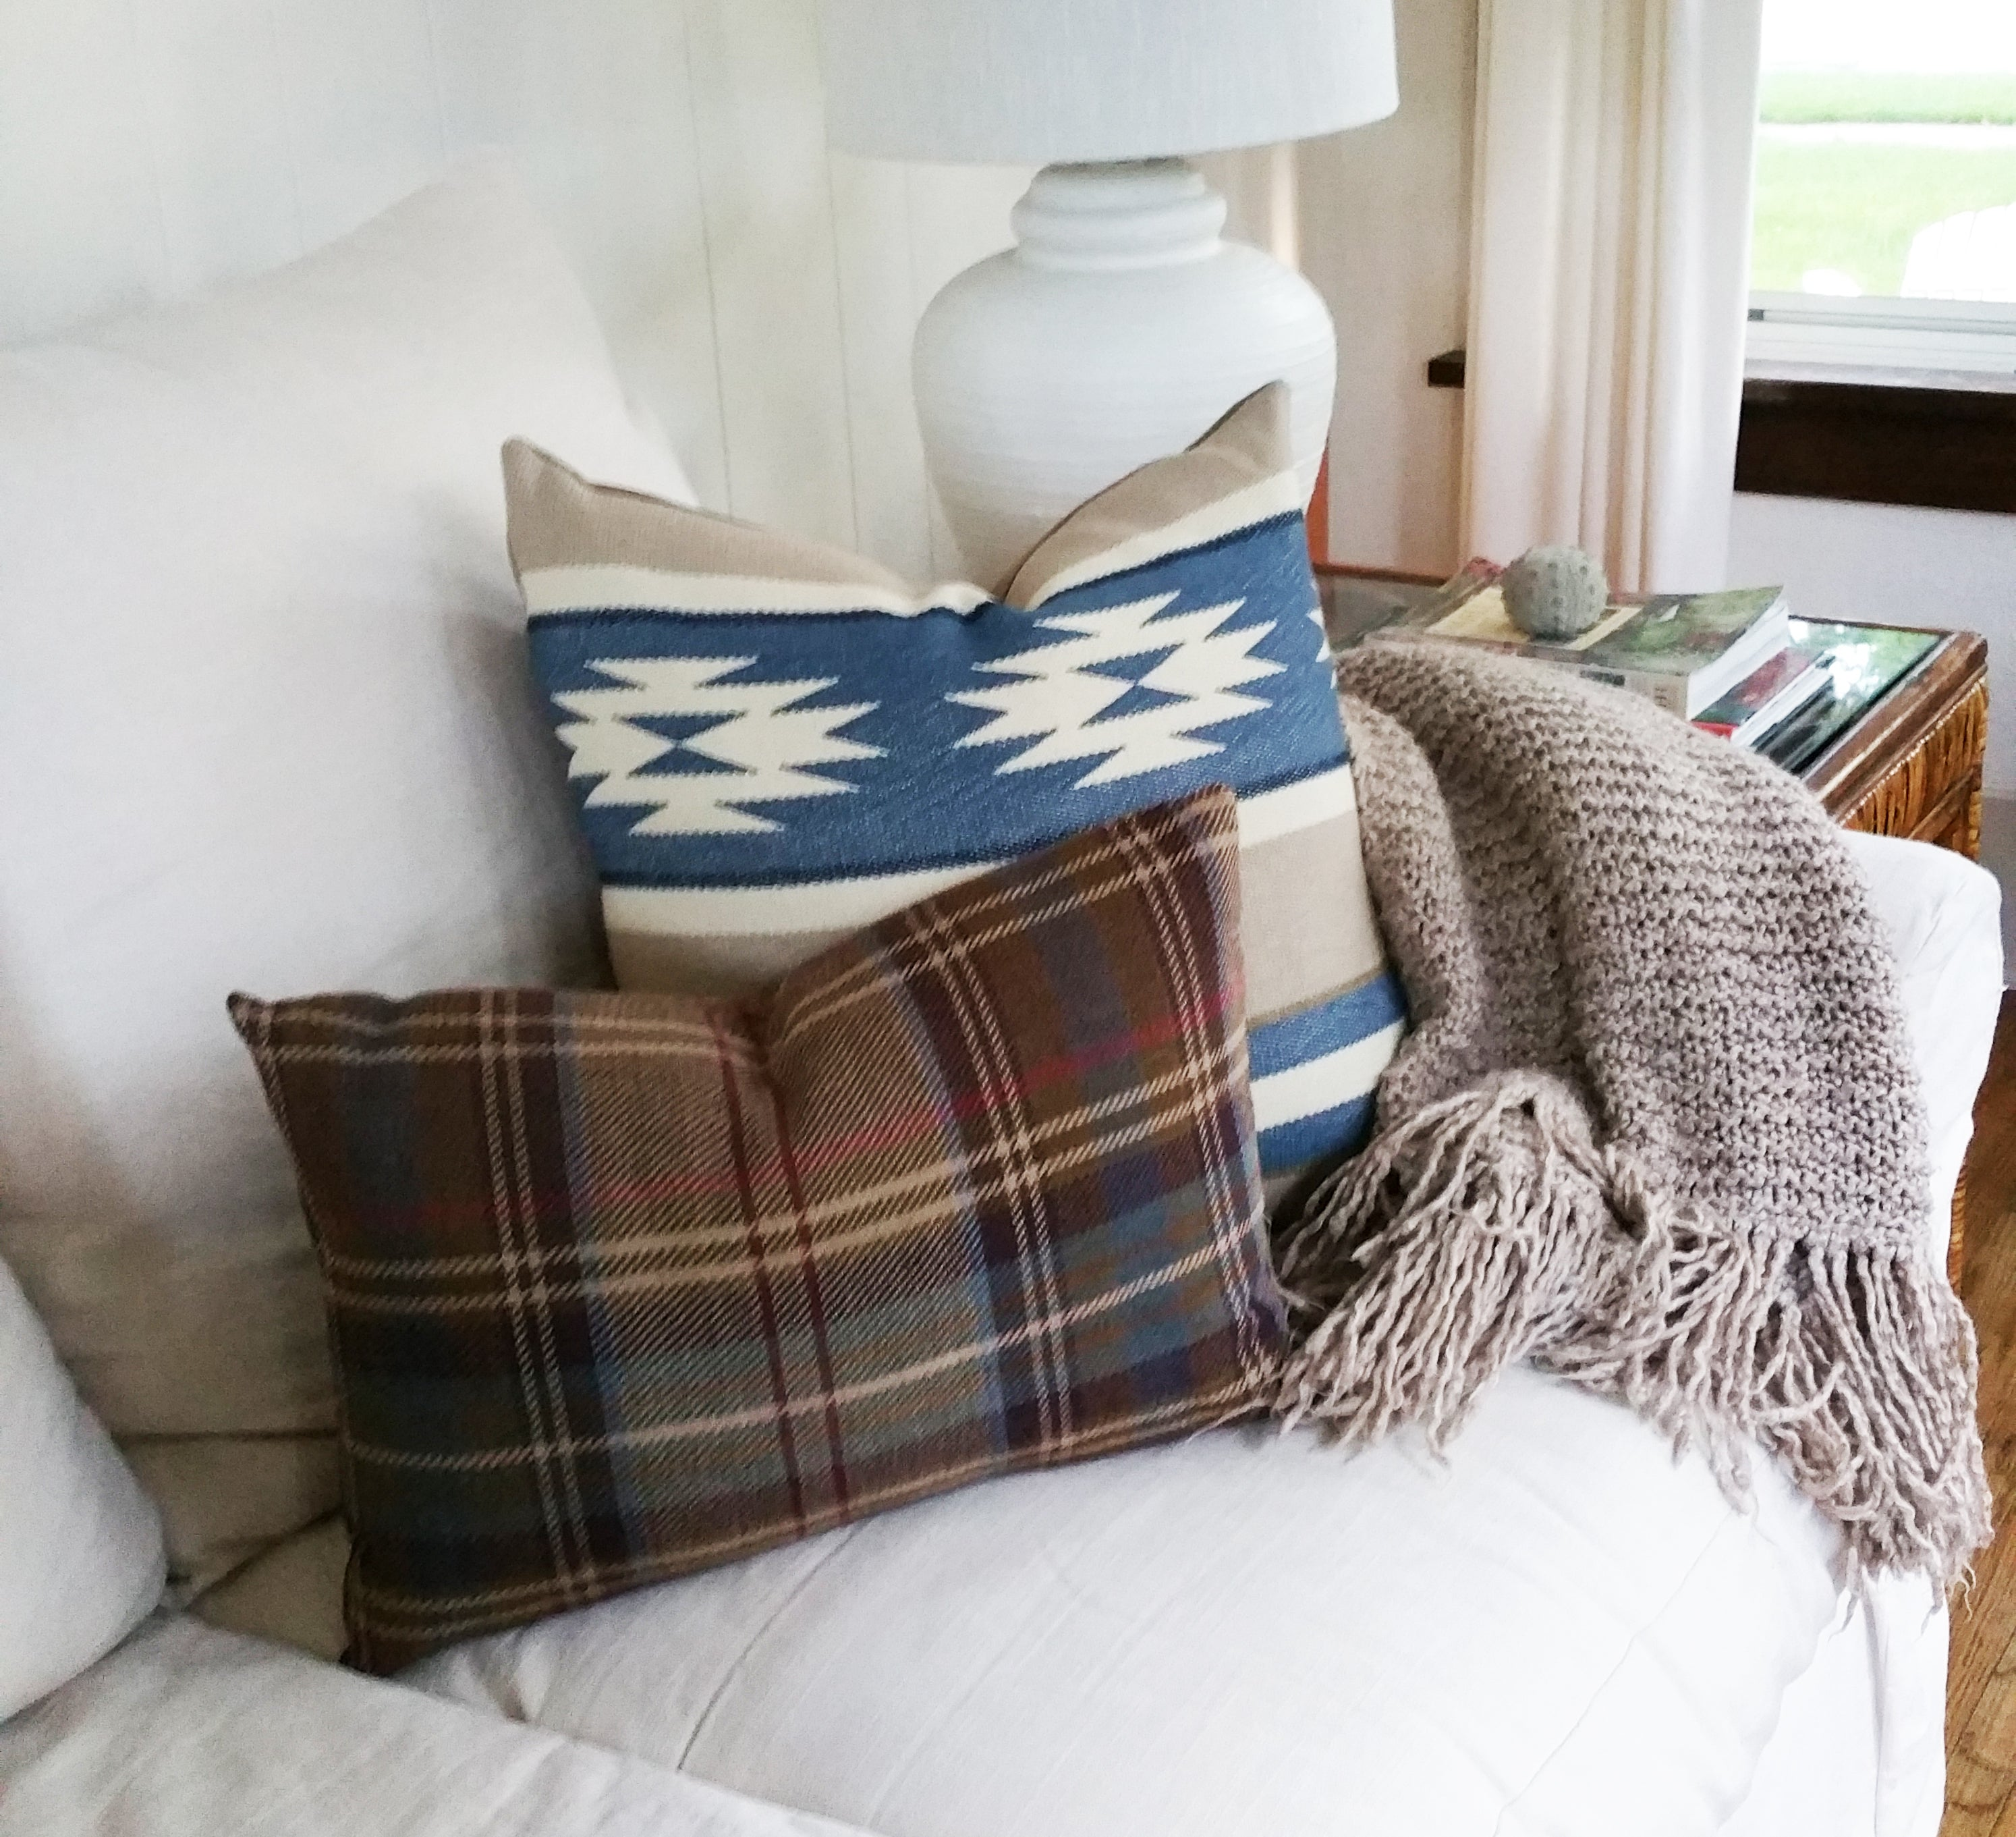 Custom pillow covers made from Ralph Lauren Home fabrics are always a great way to make a statement with your home decor.